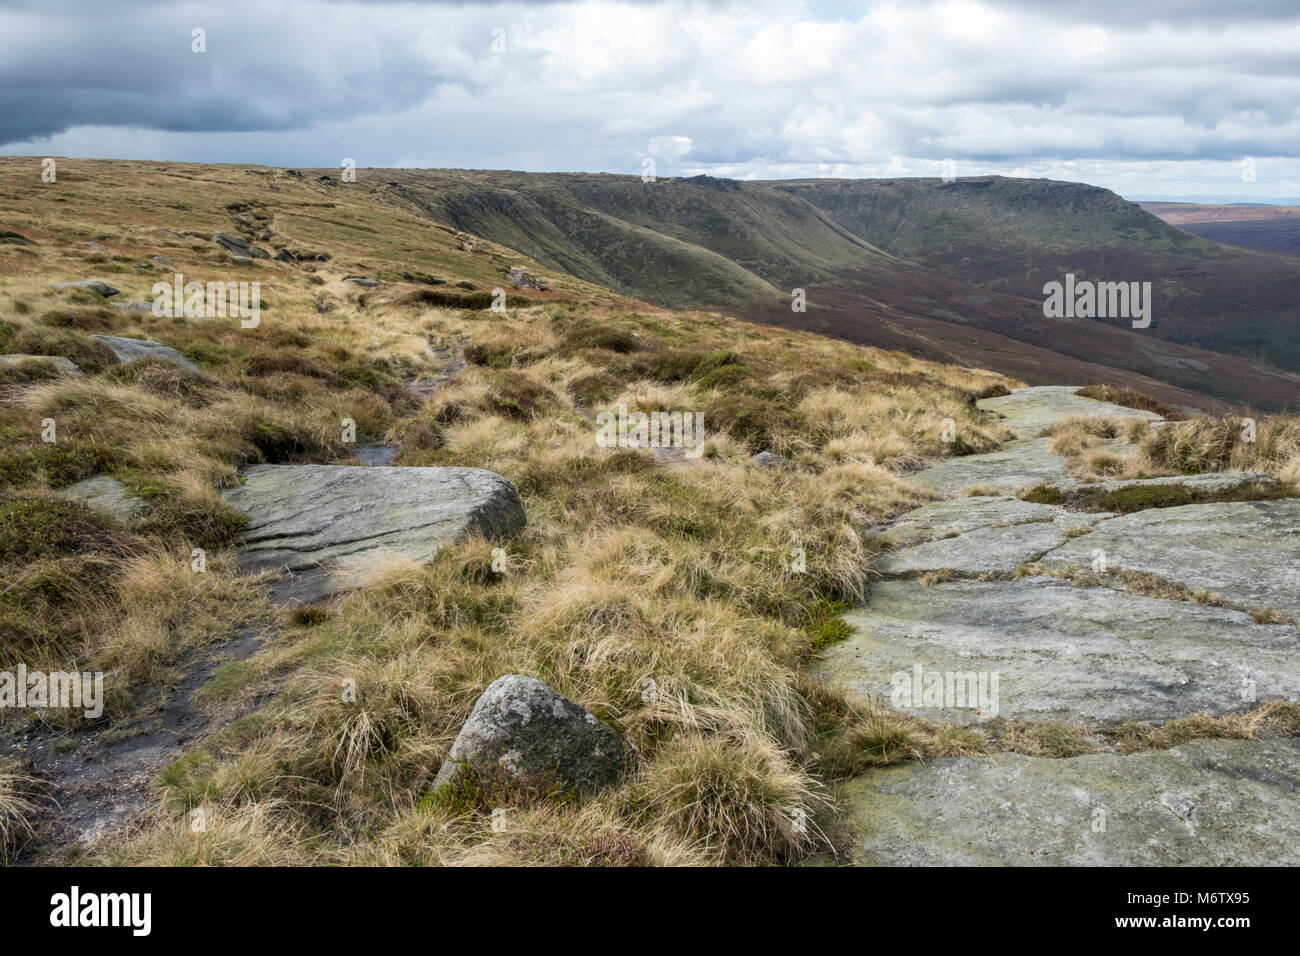 Moors landscape. Seal Edge, Kinder Scout, Derbyshire, Peak District National Park, England, UK - Stock Image